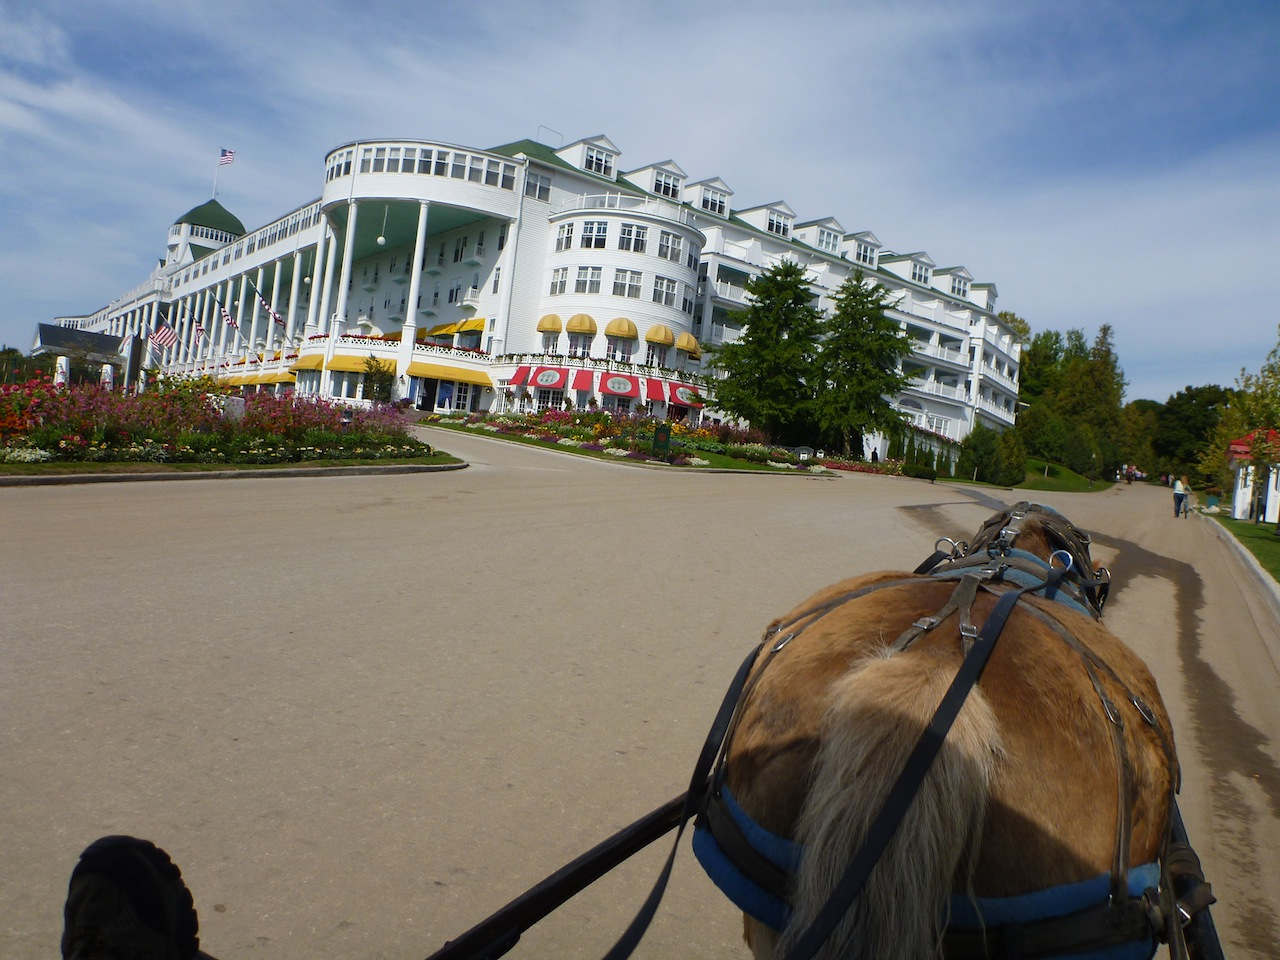 Just Part Of The Grand Hotel On Mackinac Island